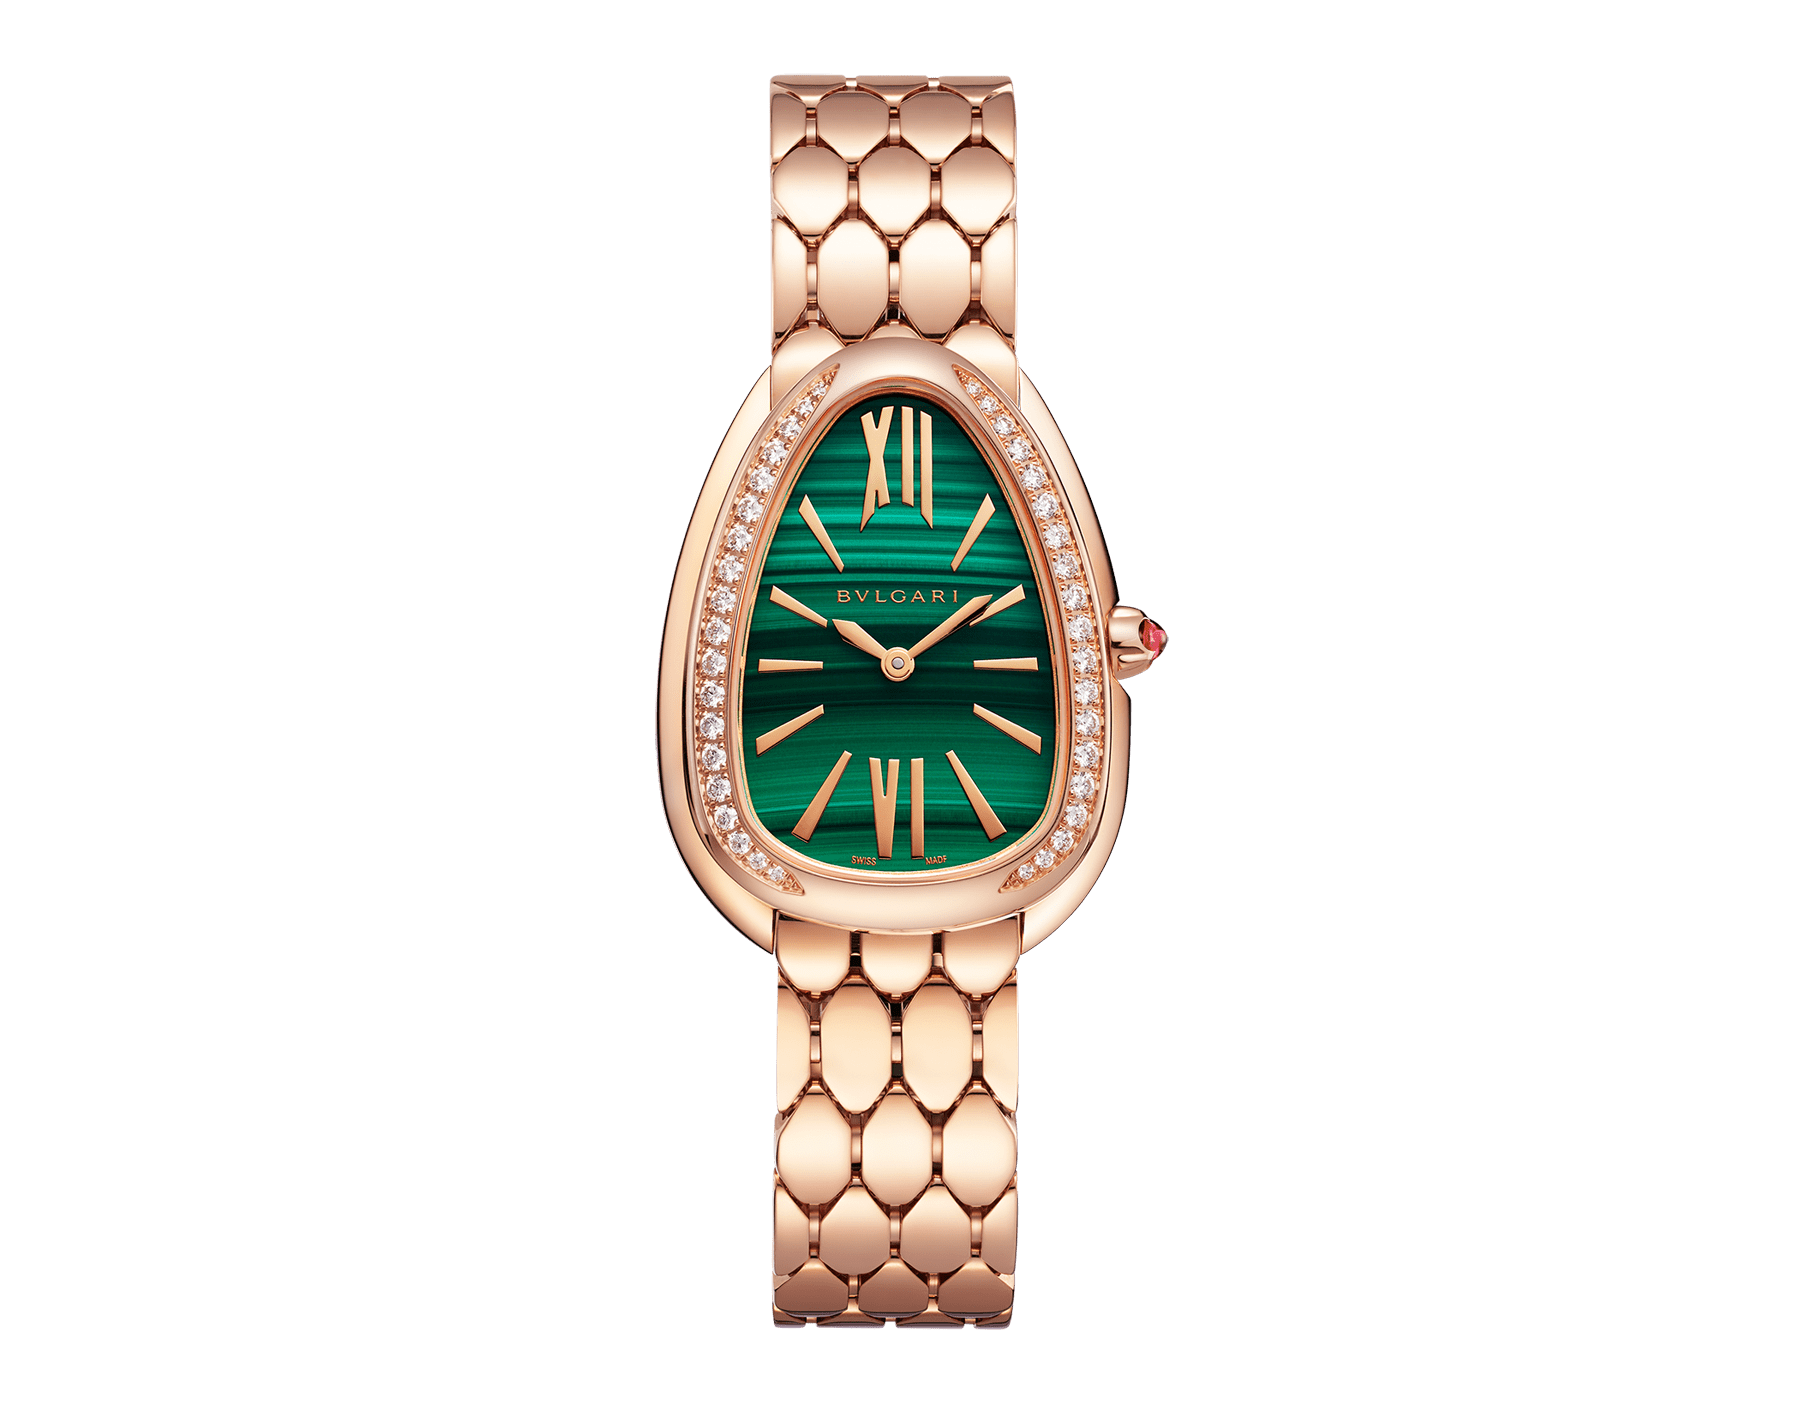 Serpenti Seduttori watch with 18 kt rose gold case and bracelet, 18 kt rose gold bezel set with diamonds and malachite dial 103273 image 1